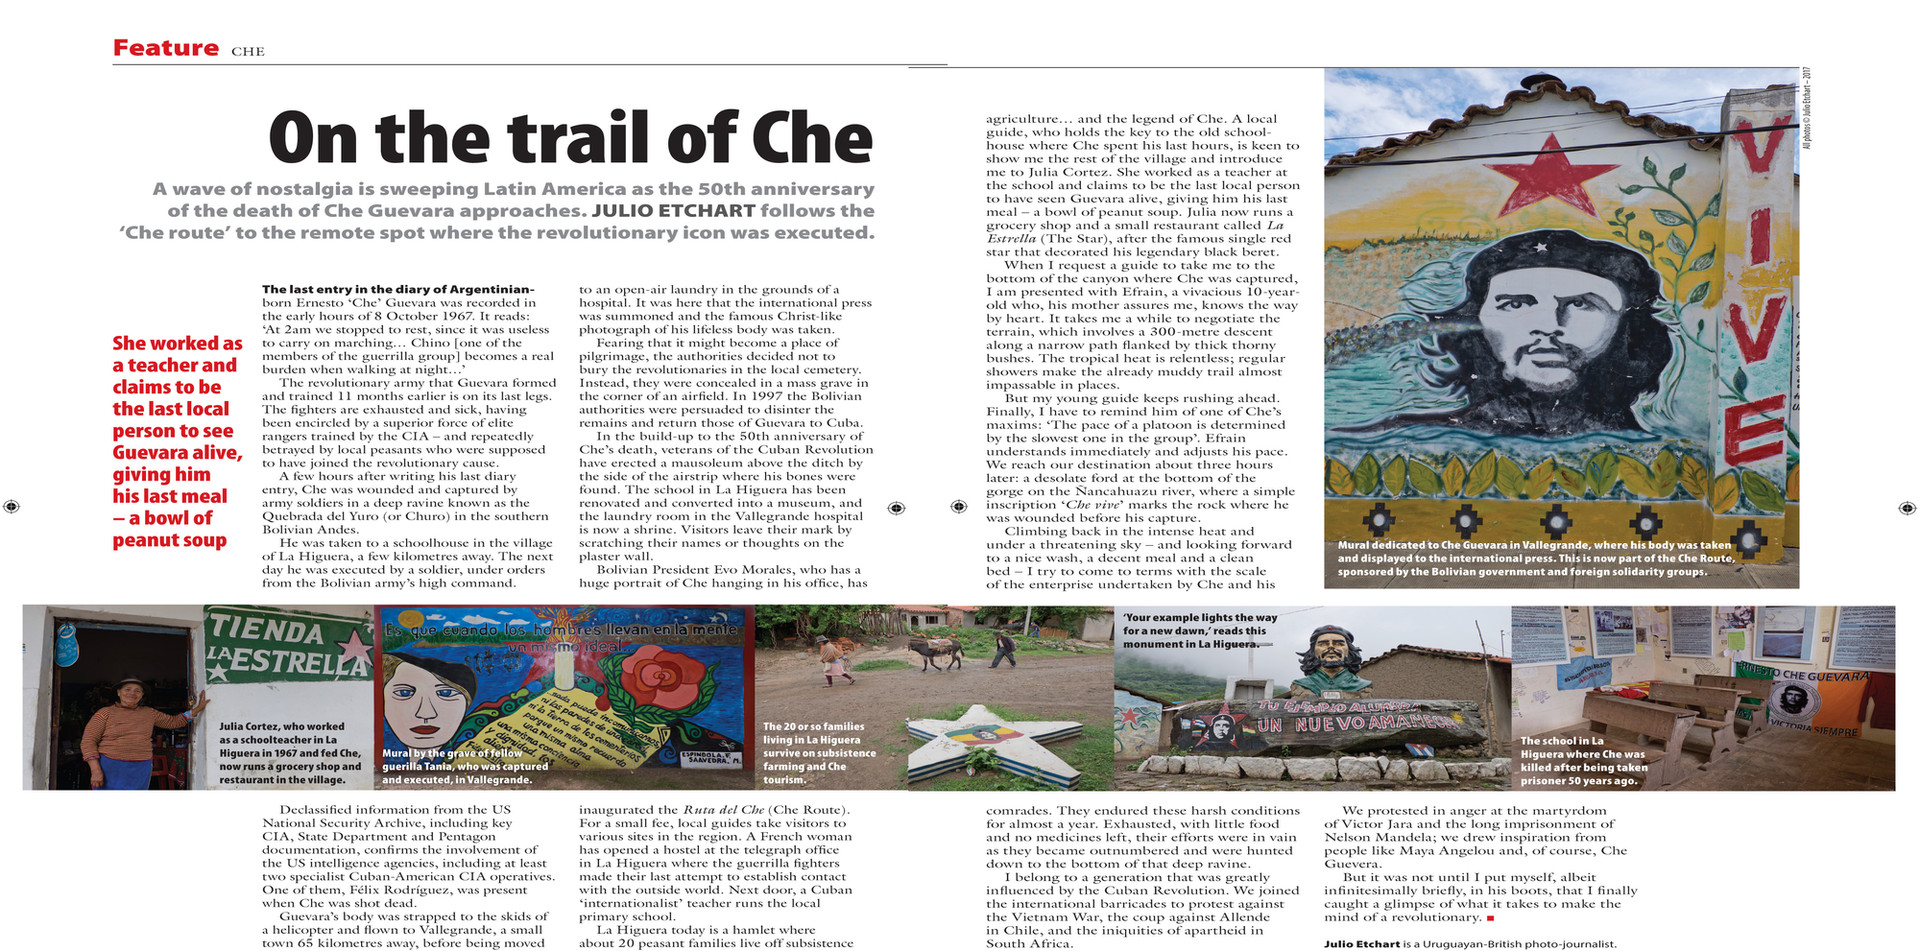 Travelogue on the trail of Che Guevara in Bolivia, for the New Internationalist magazine